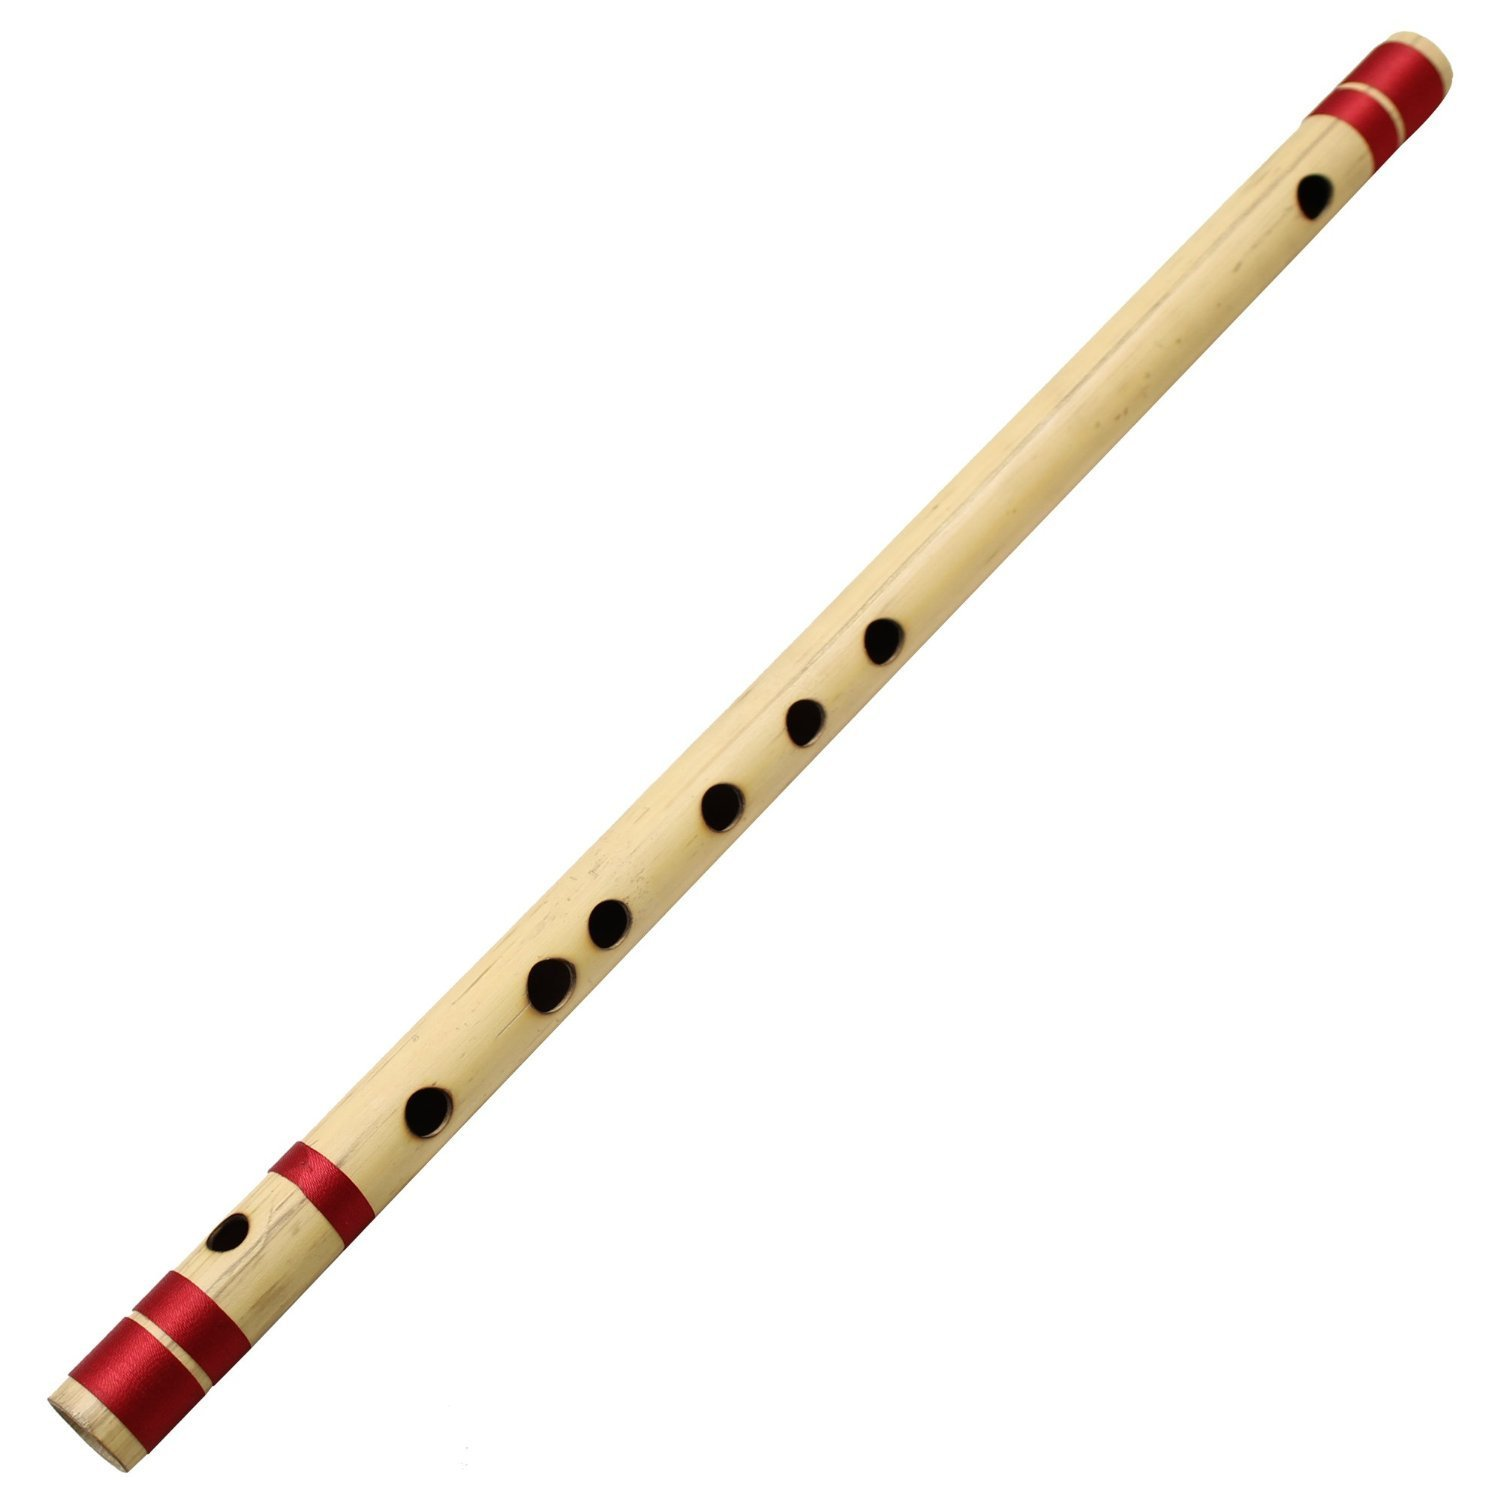 Bansuri The Instrument